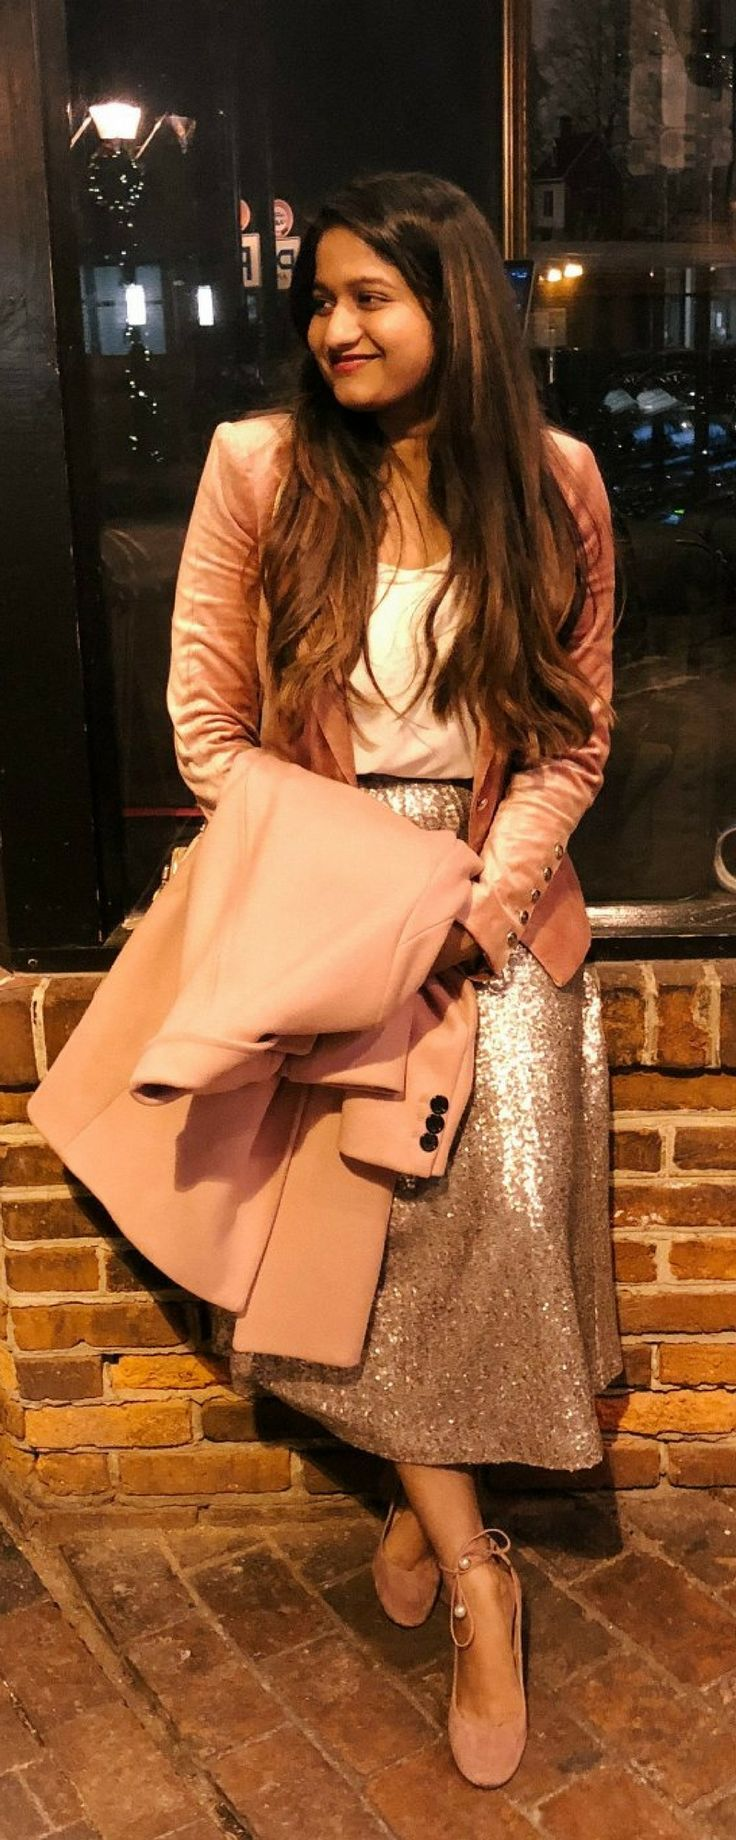 2018 Goals | dreamingloud.com -------------------------------------------- NYE outfit, sequin midi skirt, velvet pink blazer, cream silk blouse, kate spade gena heels in vintage rose, night party outfits, lady like outfit, chic party outfit ideas, boden sequin skirt, elegant and neat dressing, skirt with blazer